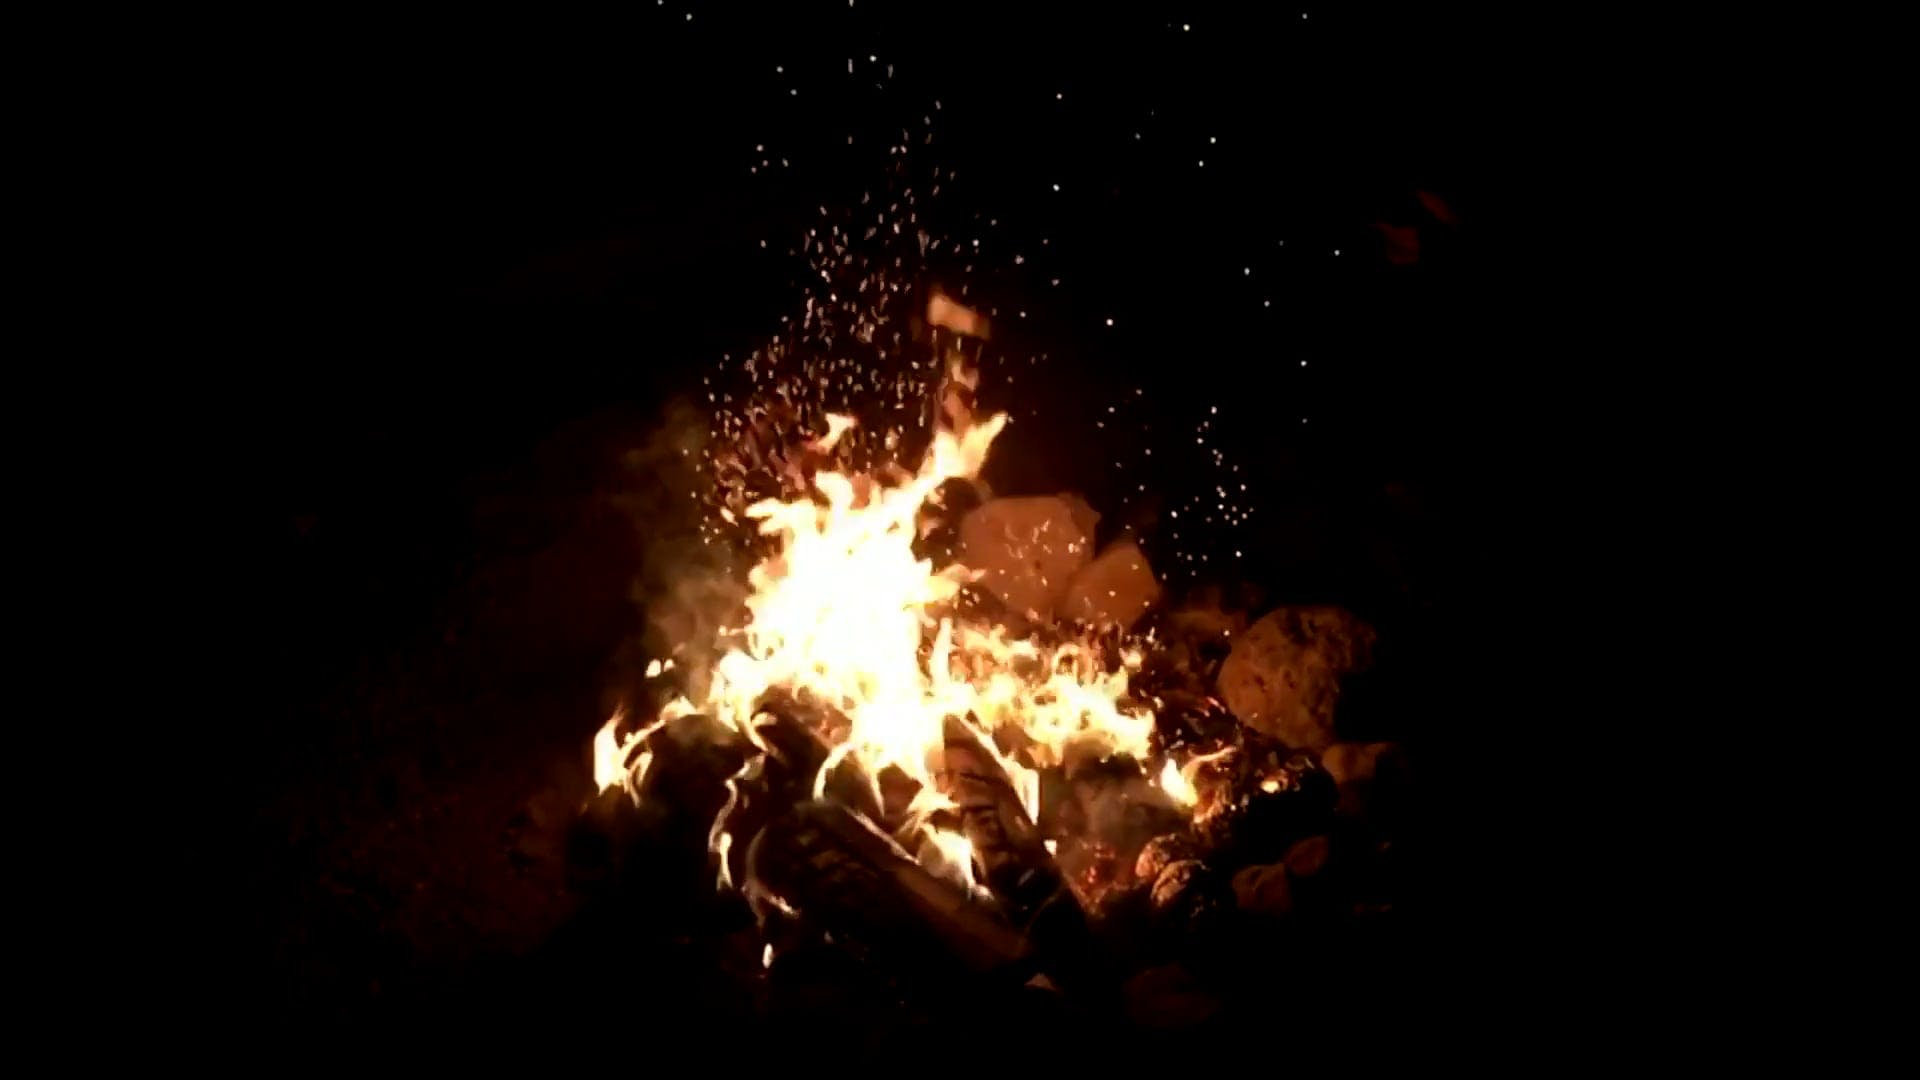 Slow Motion Video Of Bonfire